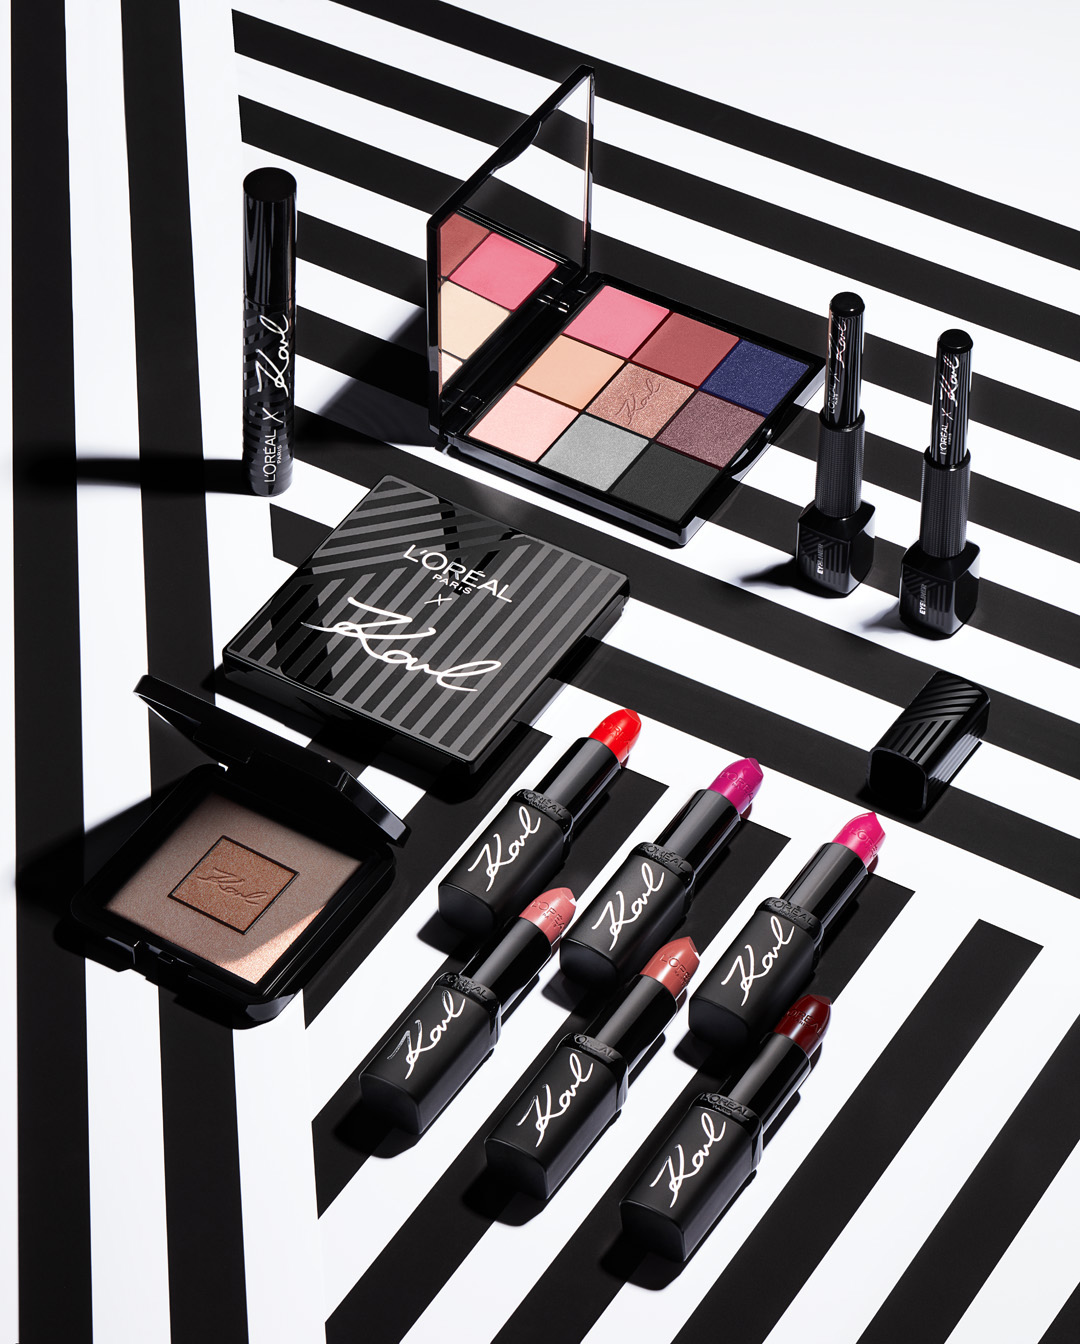 First look at Karl Lagerfeld x L'Oréal Paris collaboration